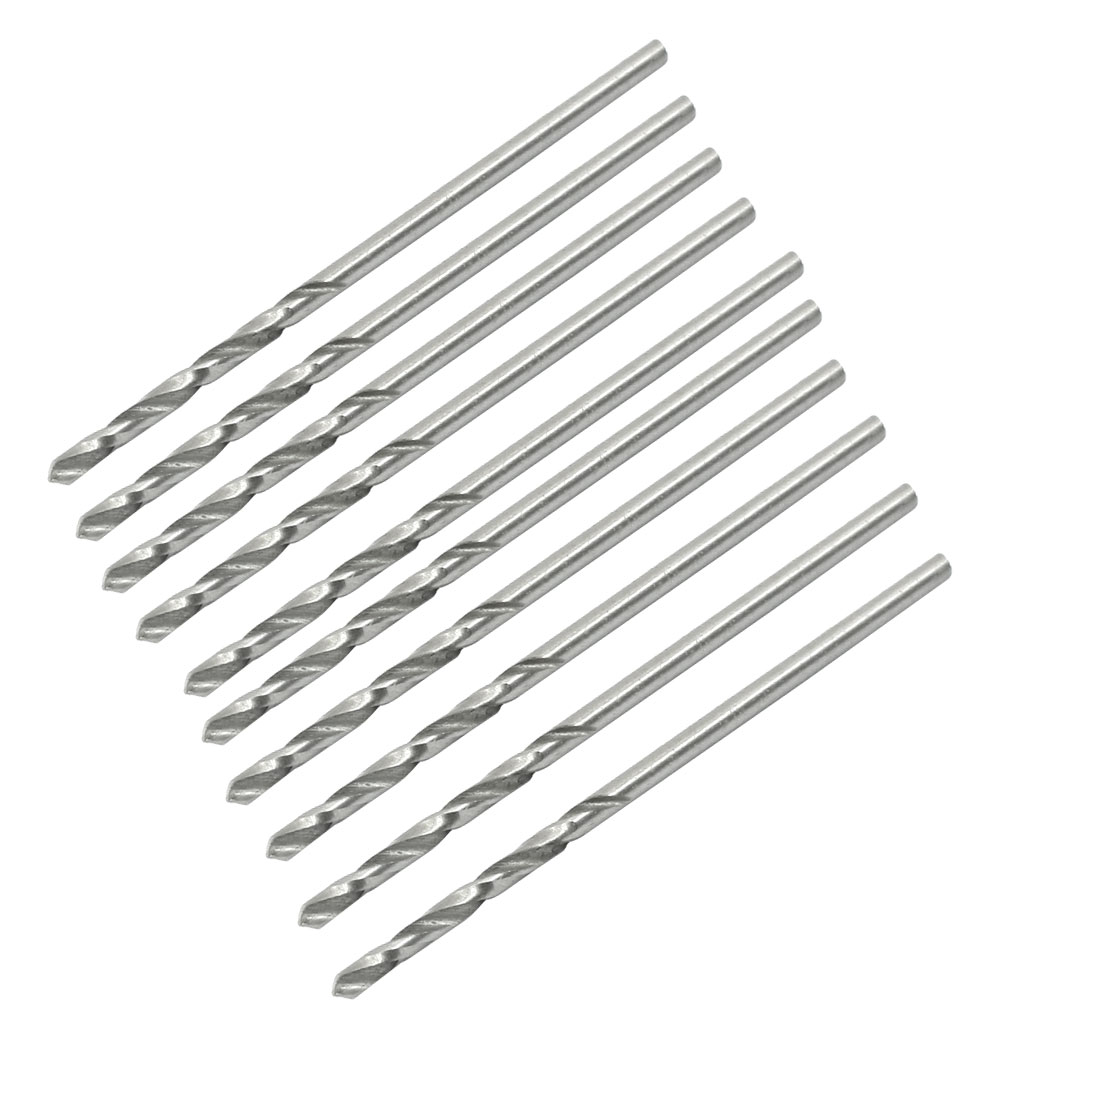 High Speed Steel 1.4mm Dia Split Point 40mm Long Twist Drill Bits 10 Pcs